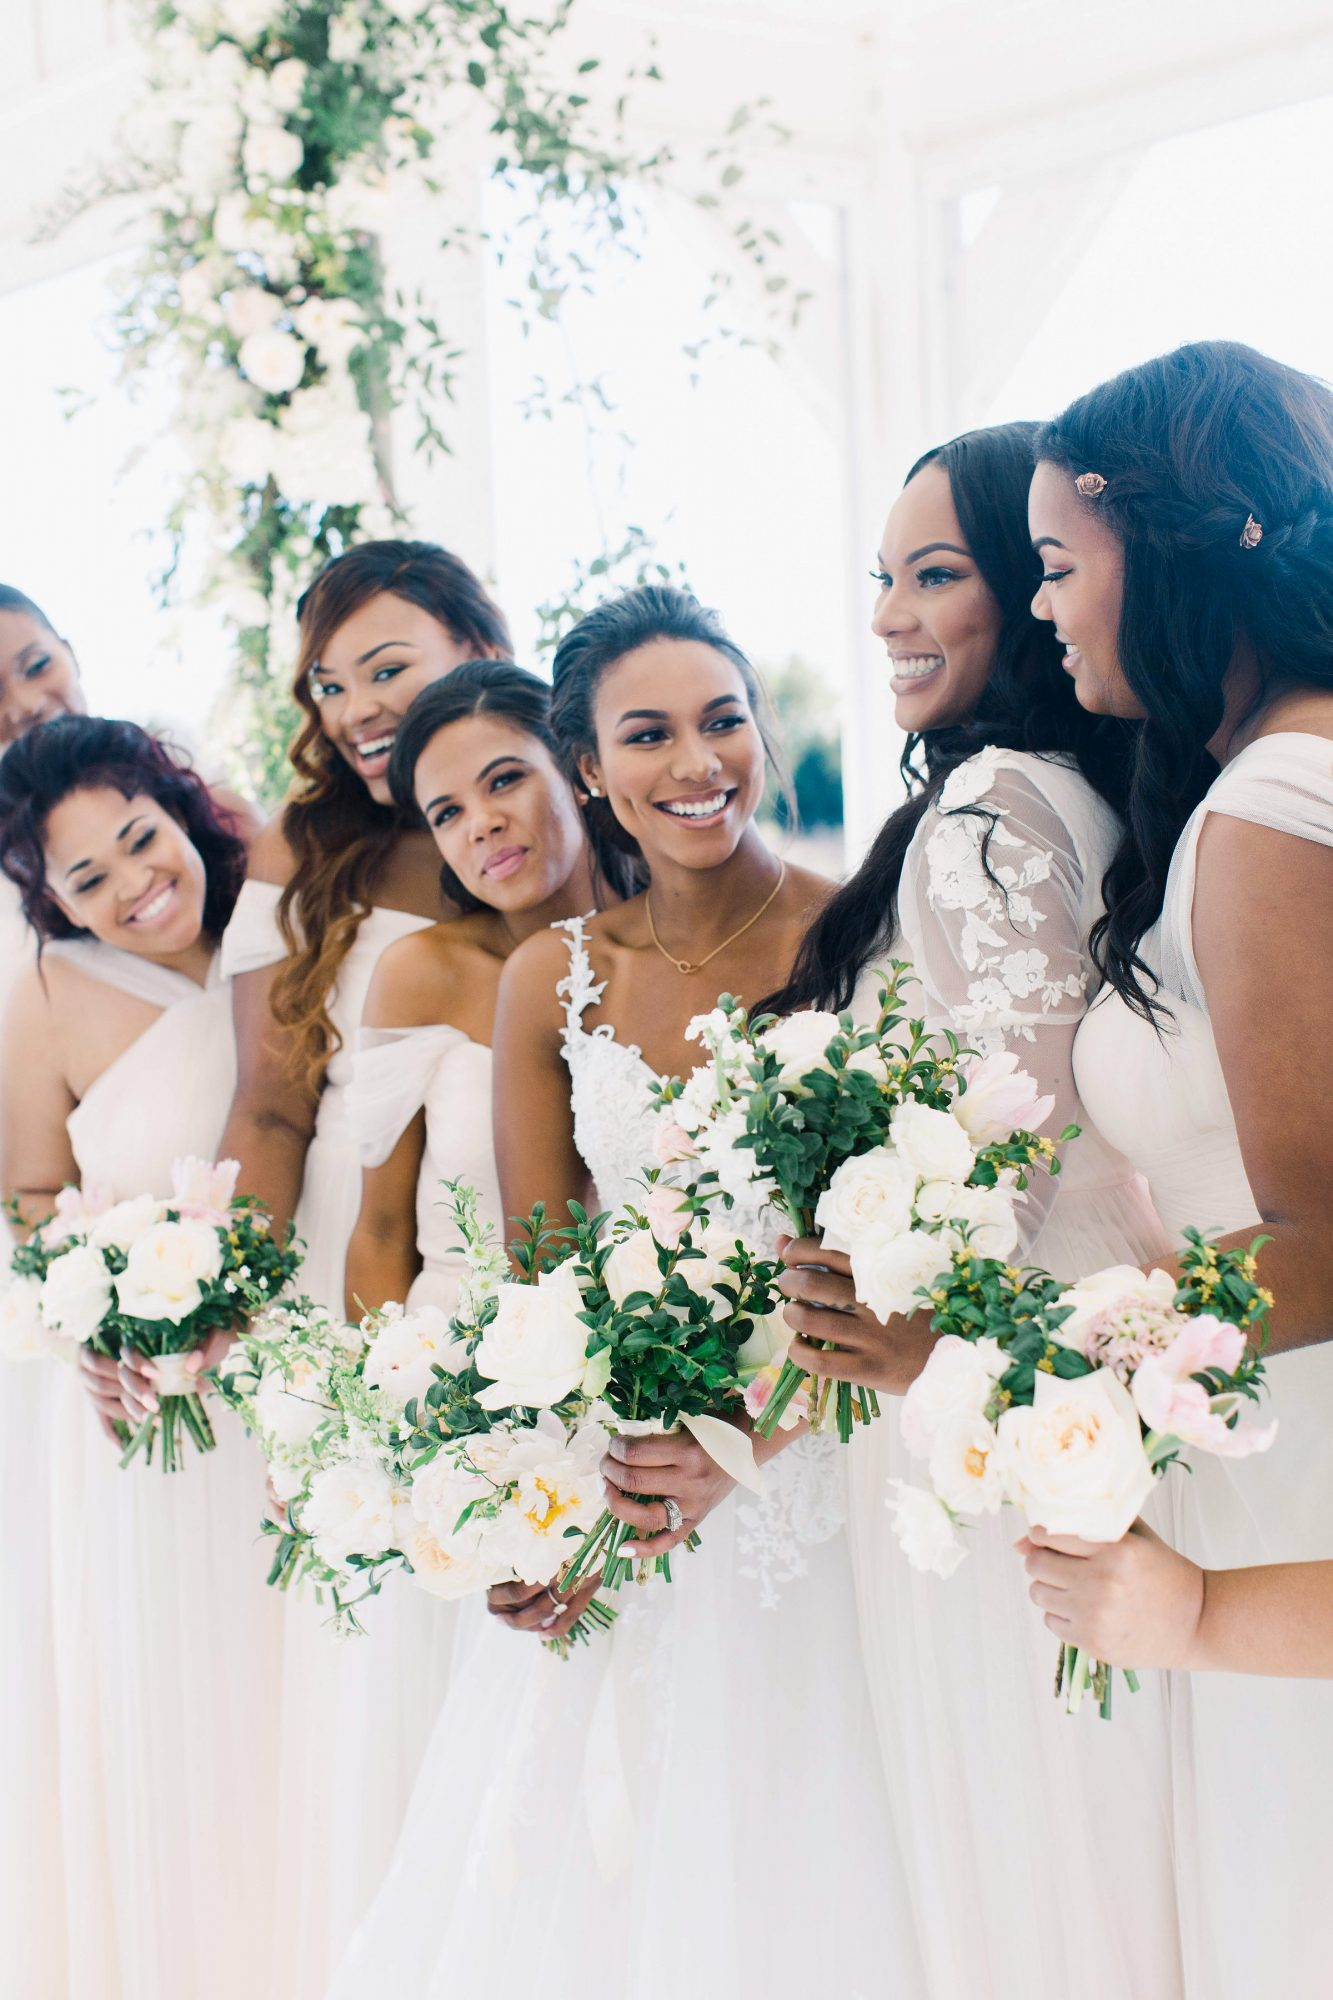 wedding bridesmaids in white holding white flowers